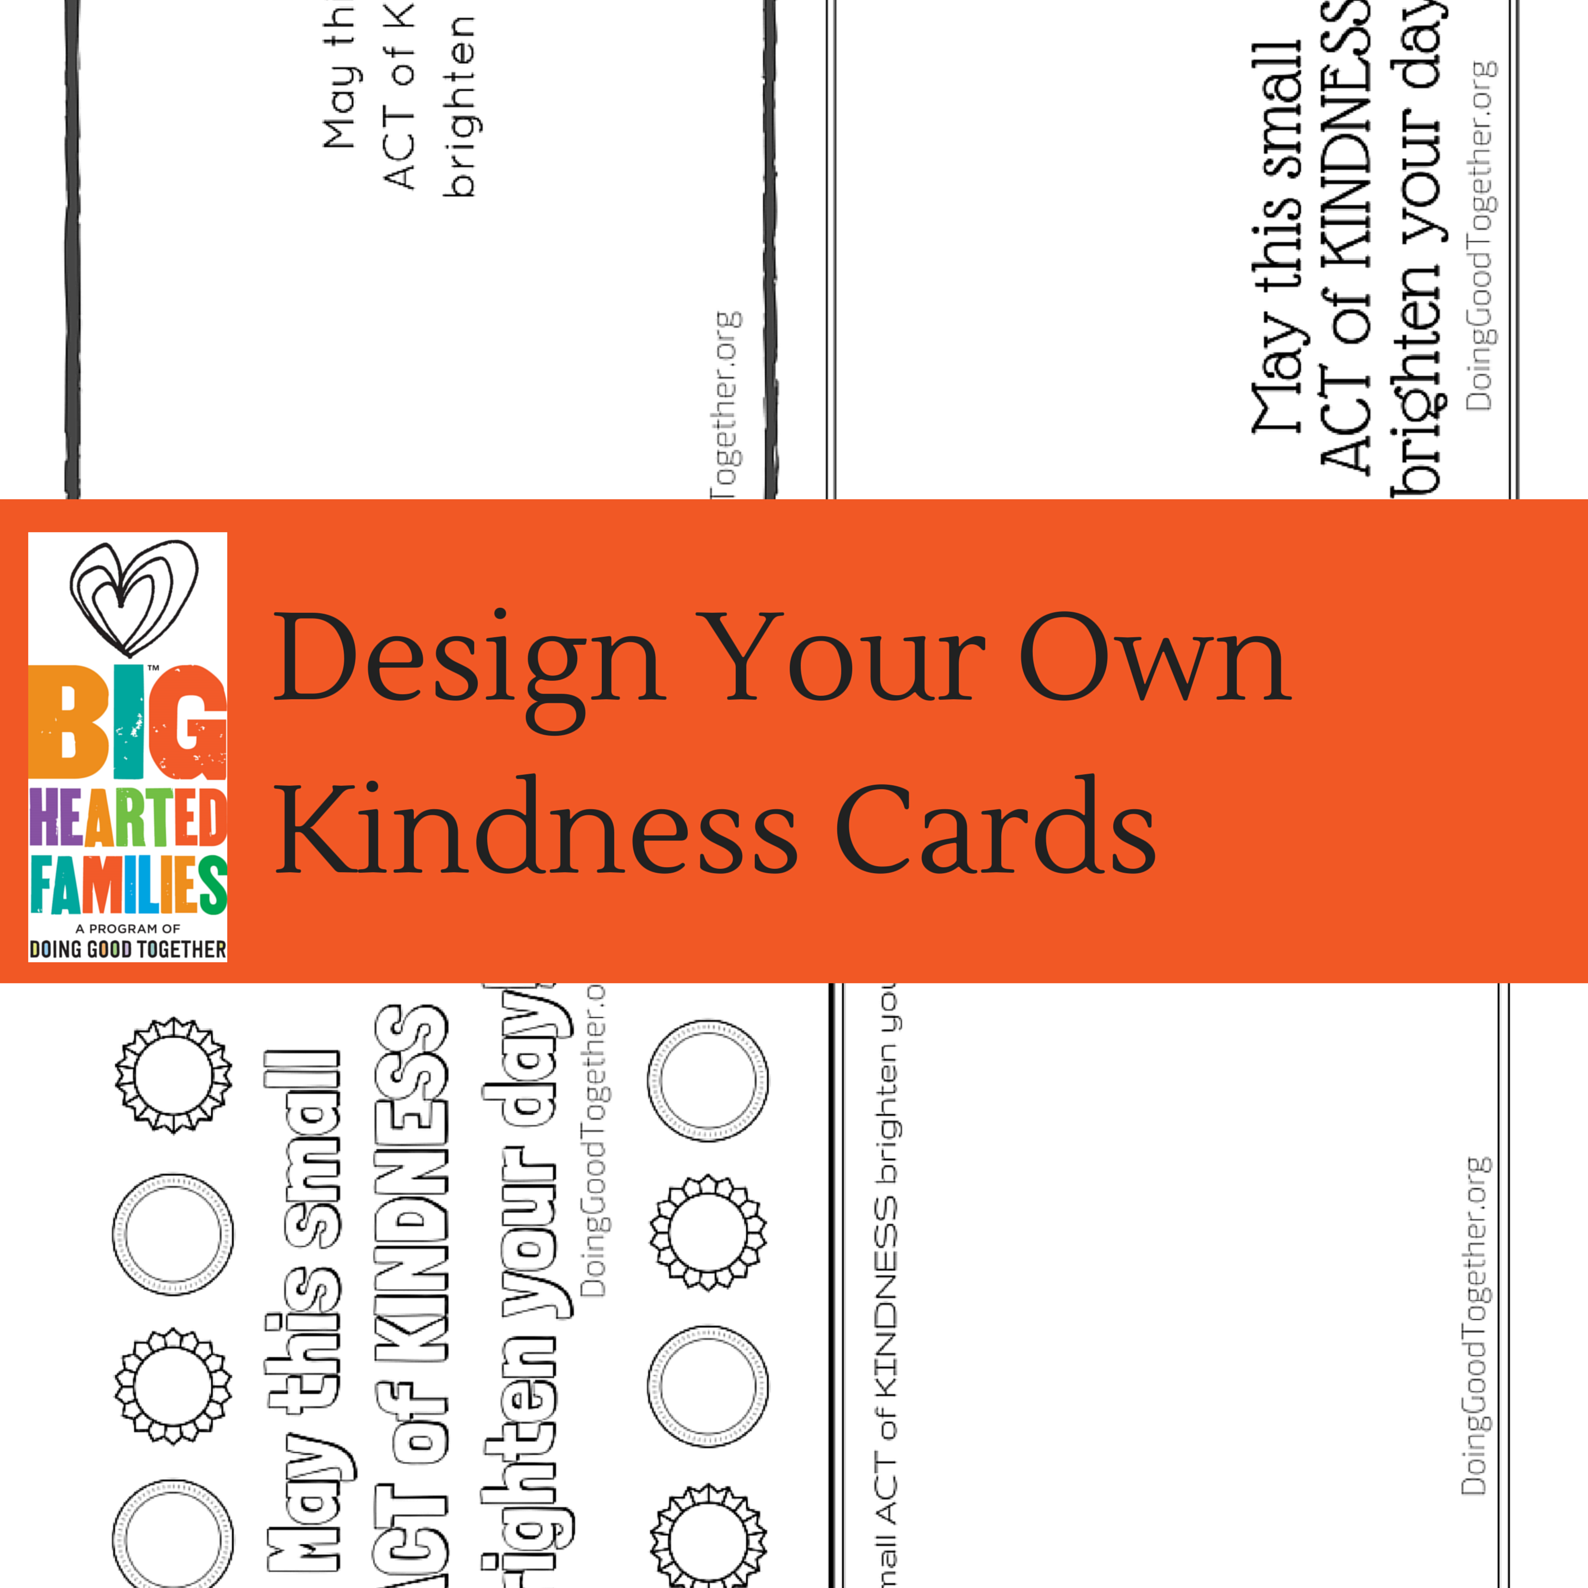 Design Your Own Kindness Cards